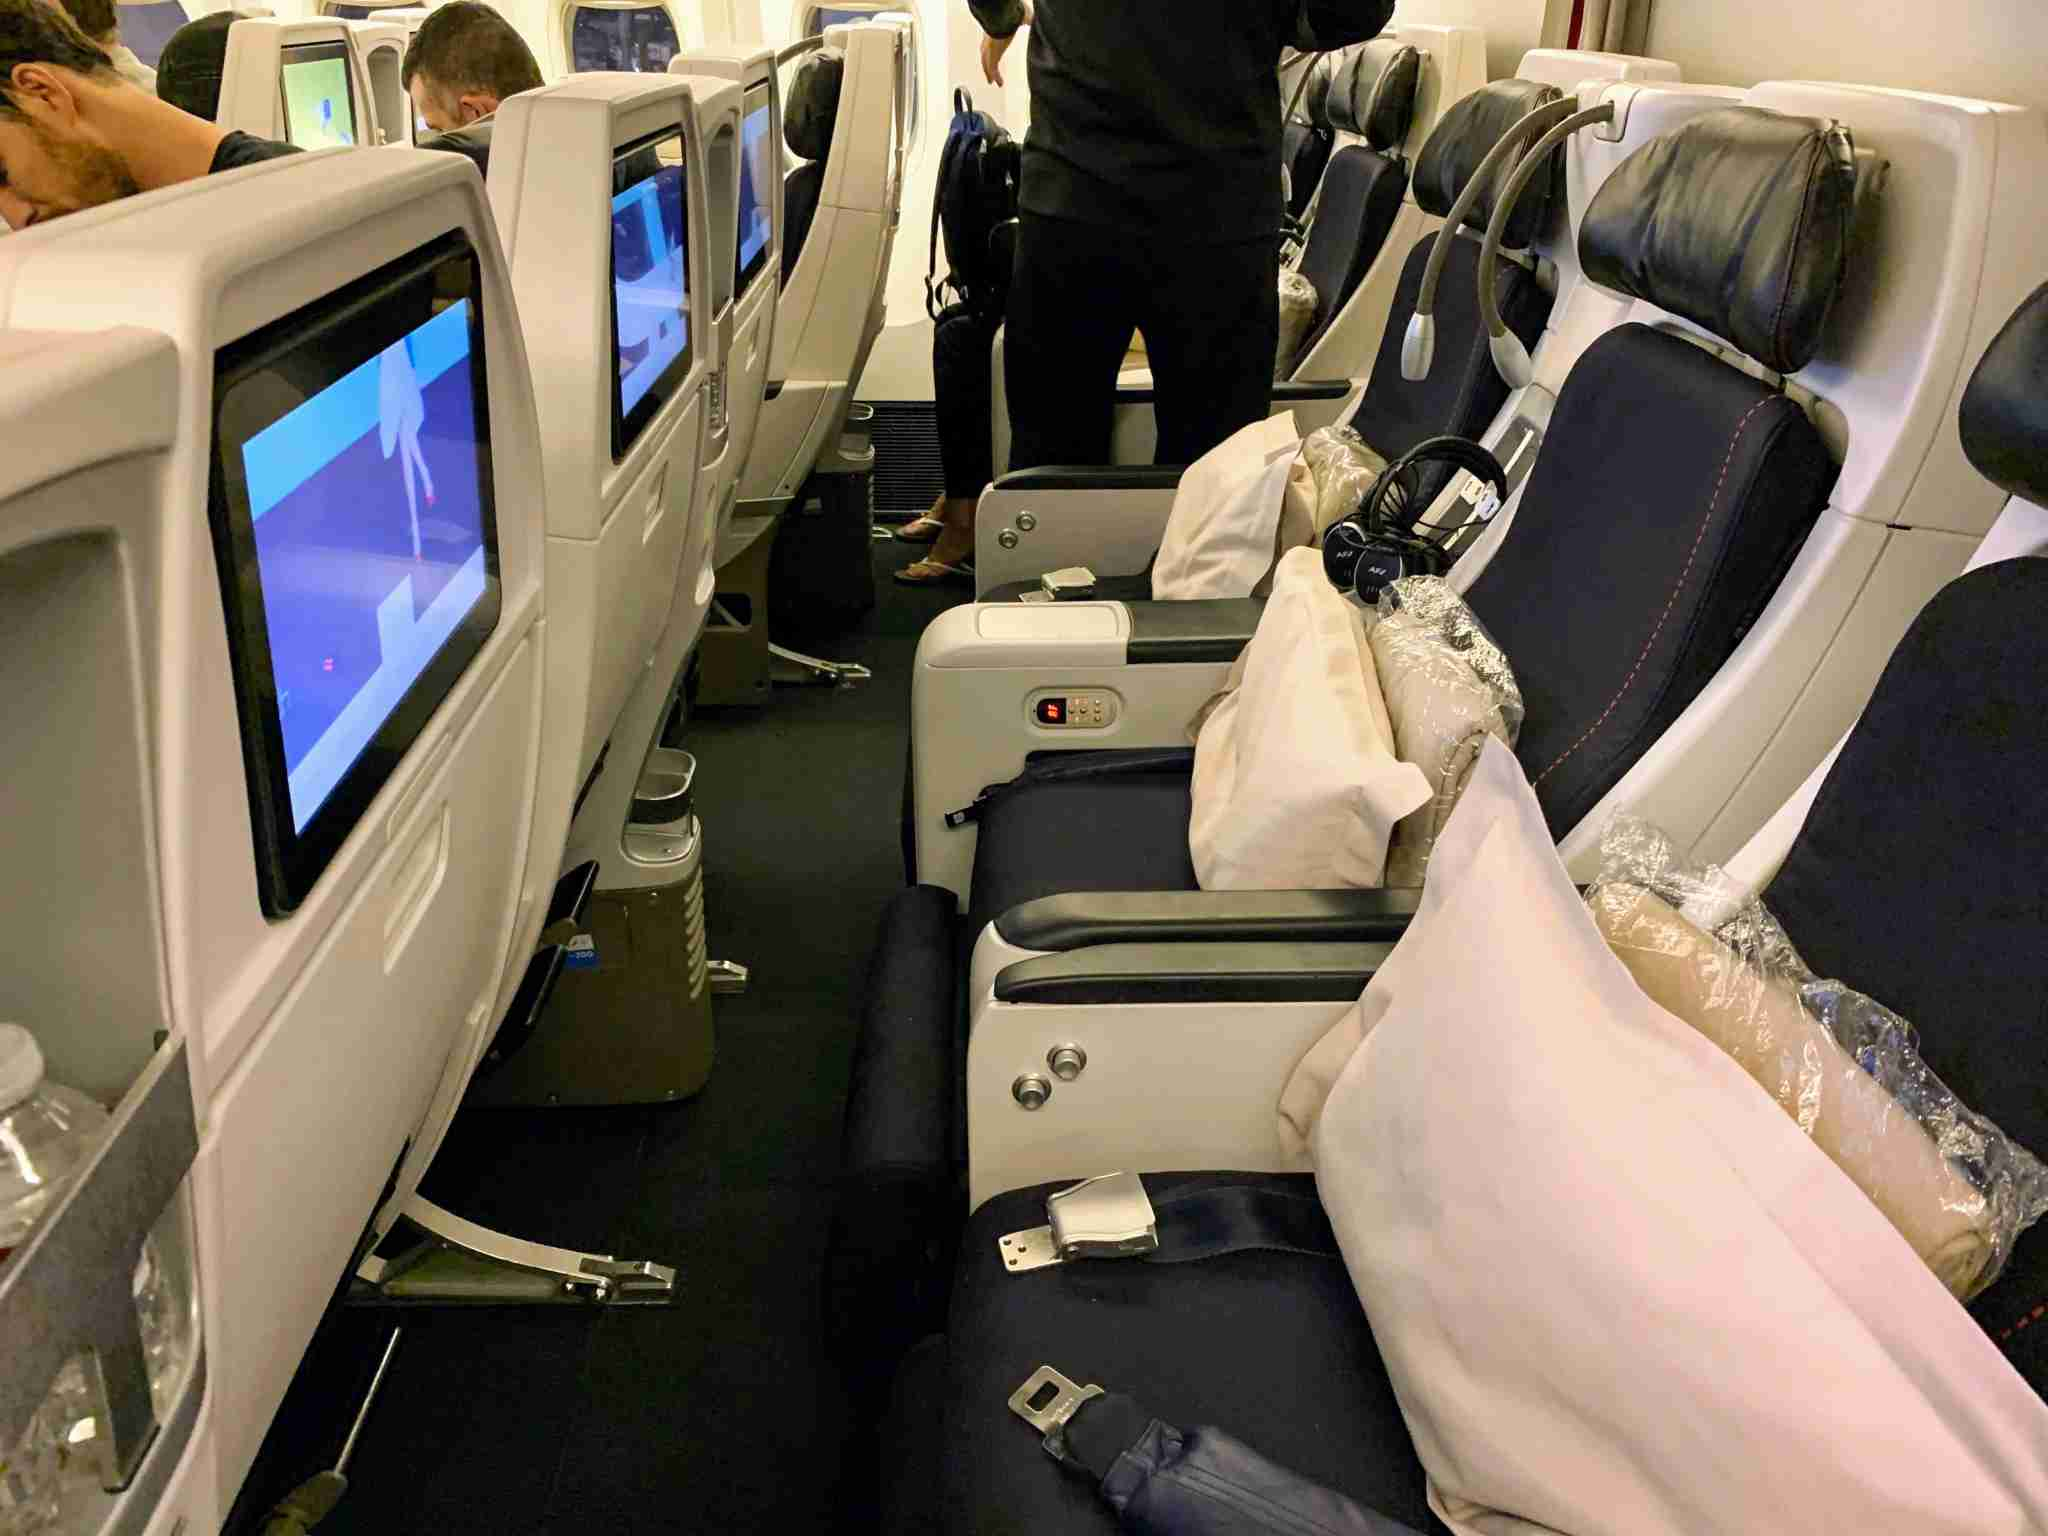 Air France Boeing 777-200 Premium Economy middle row